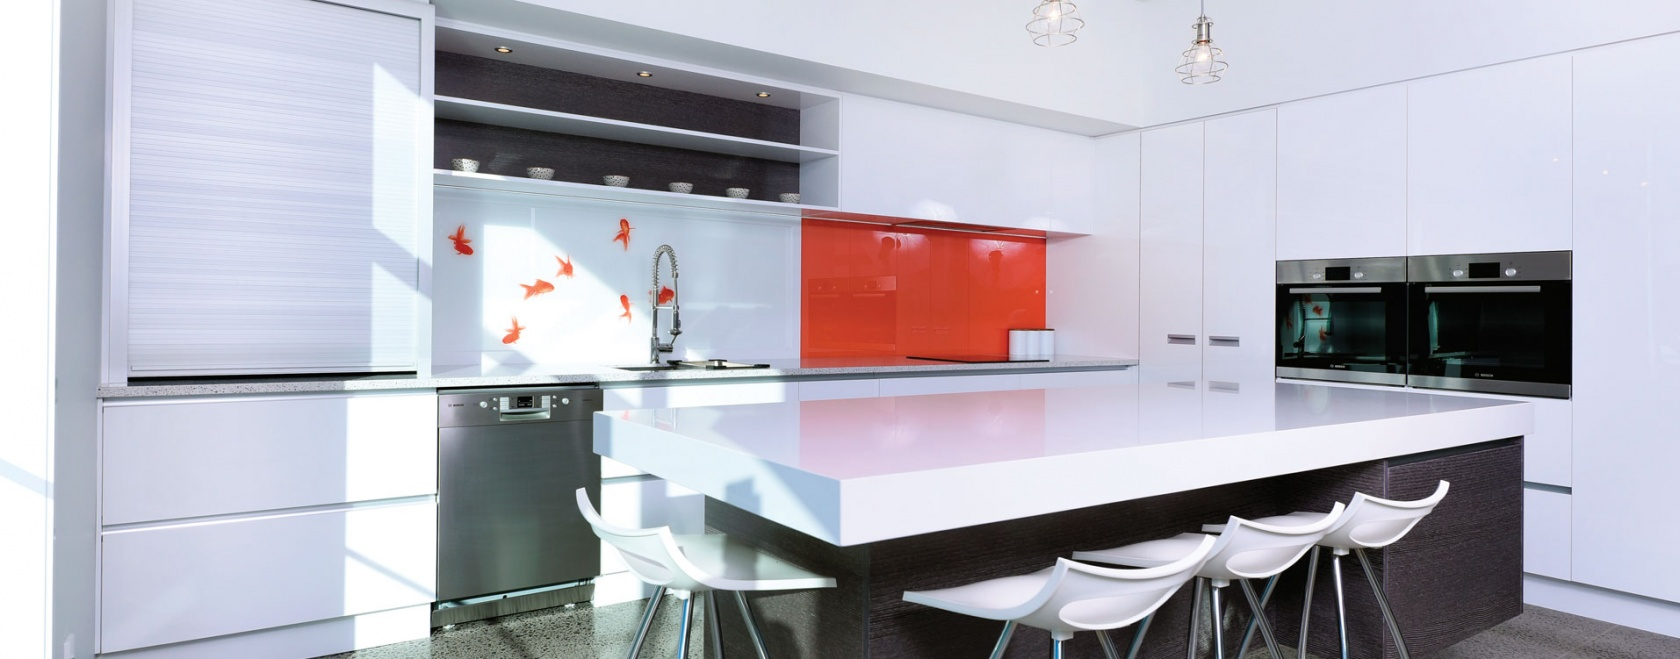 project-HKKitchens-back